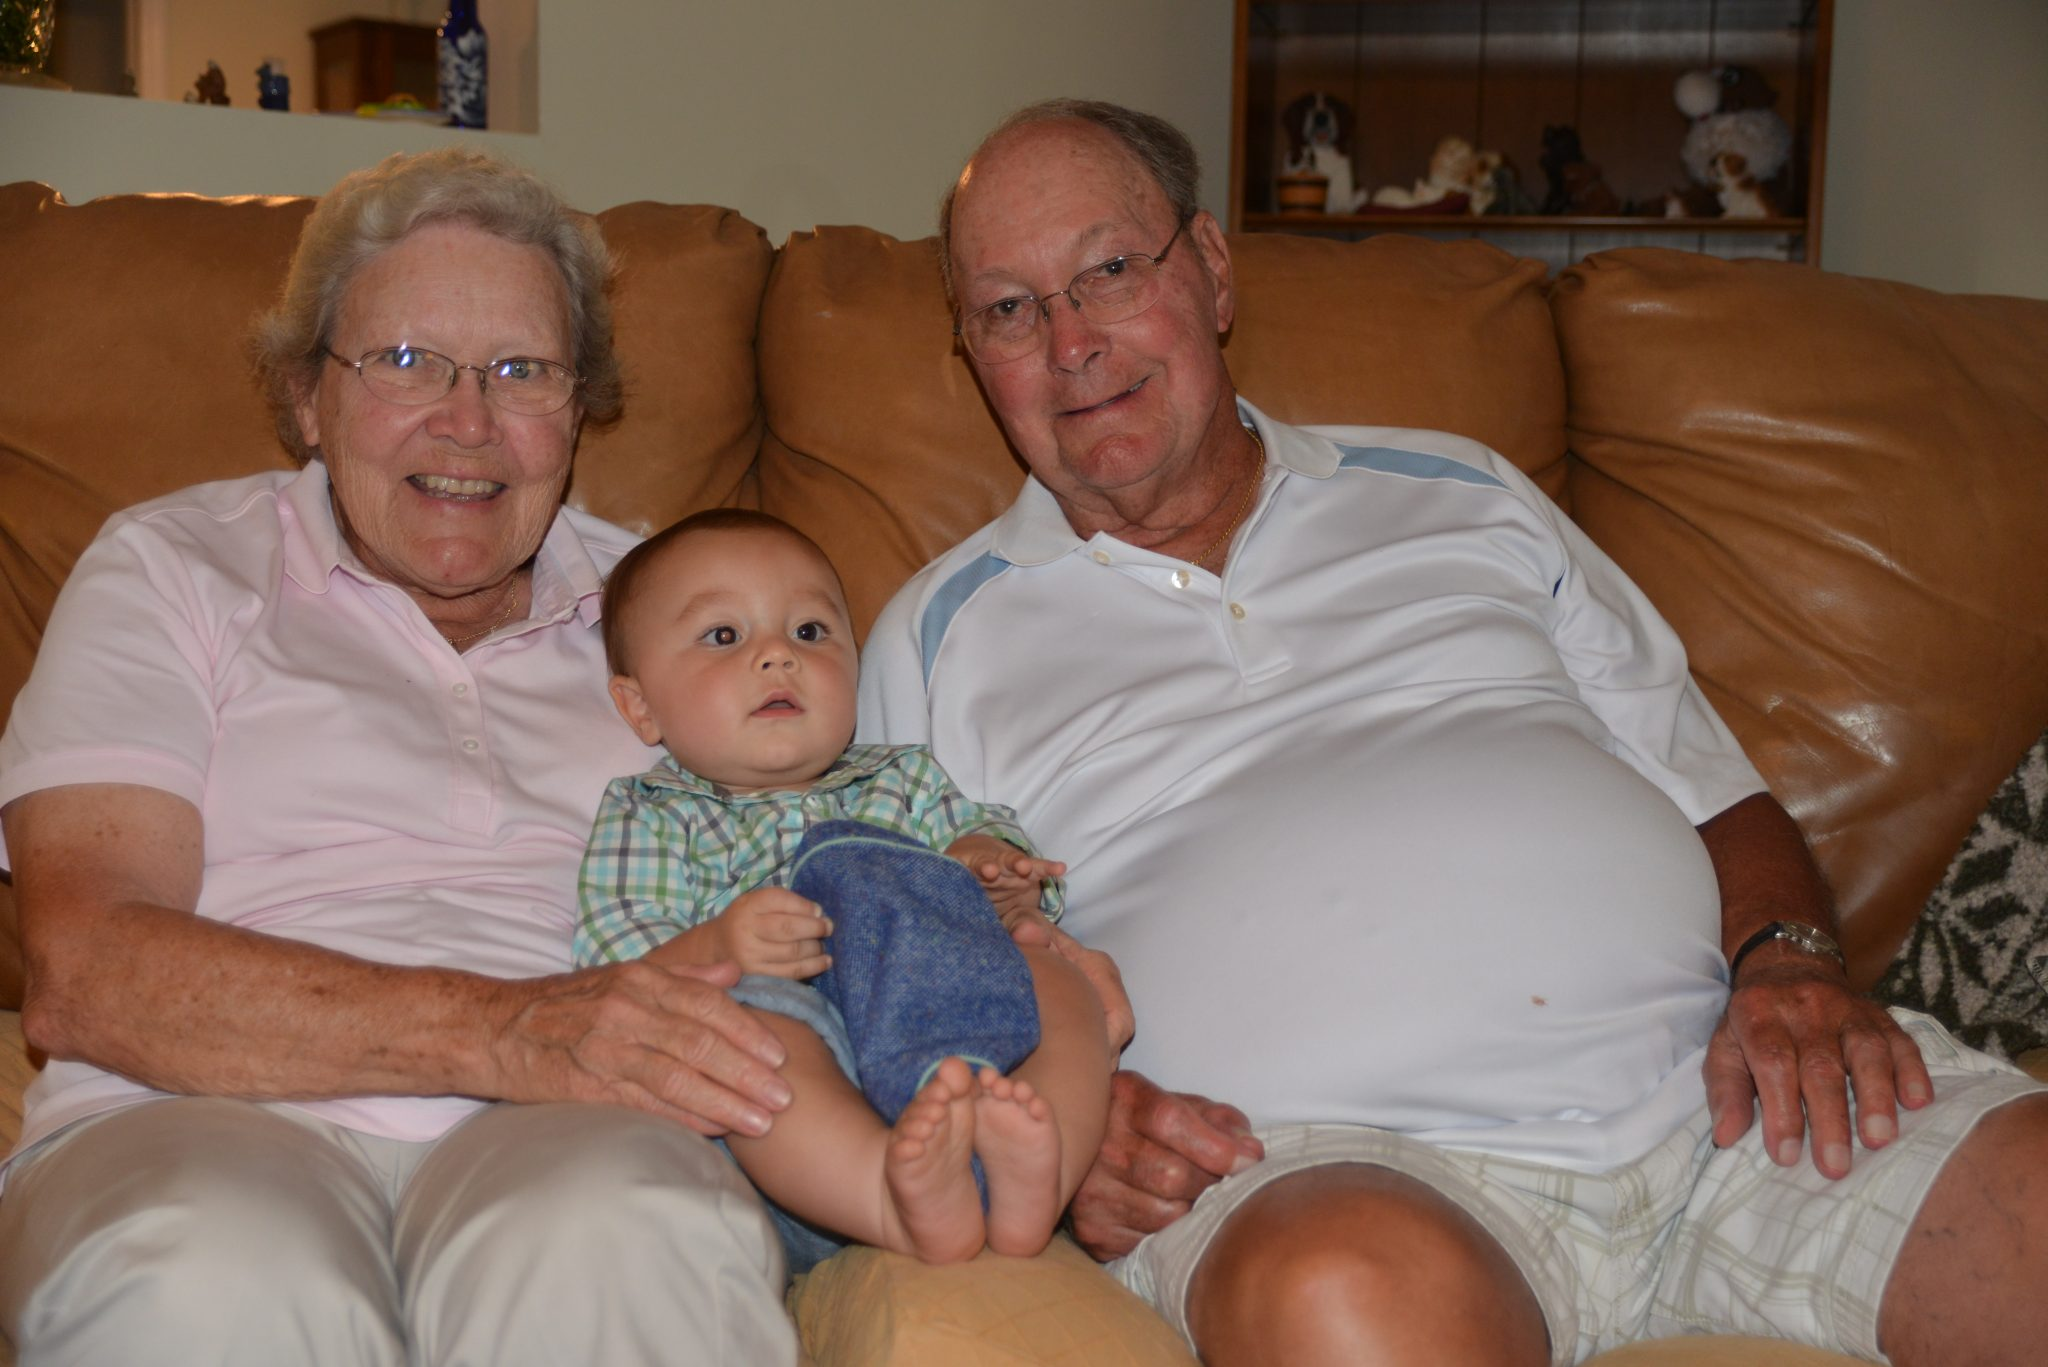 Gramps and Grandma with Great-Grandson, Lucas on his first birthday.